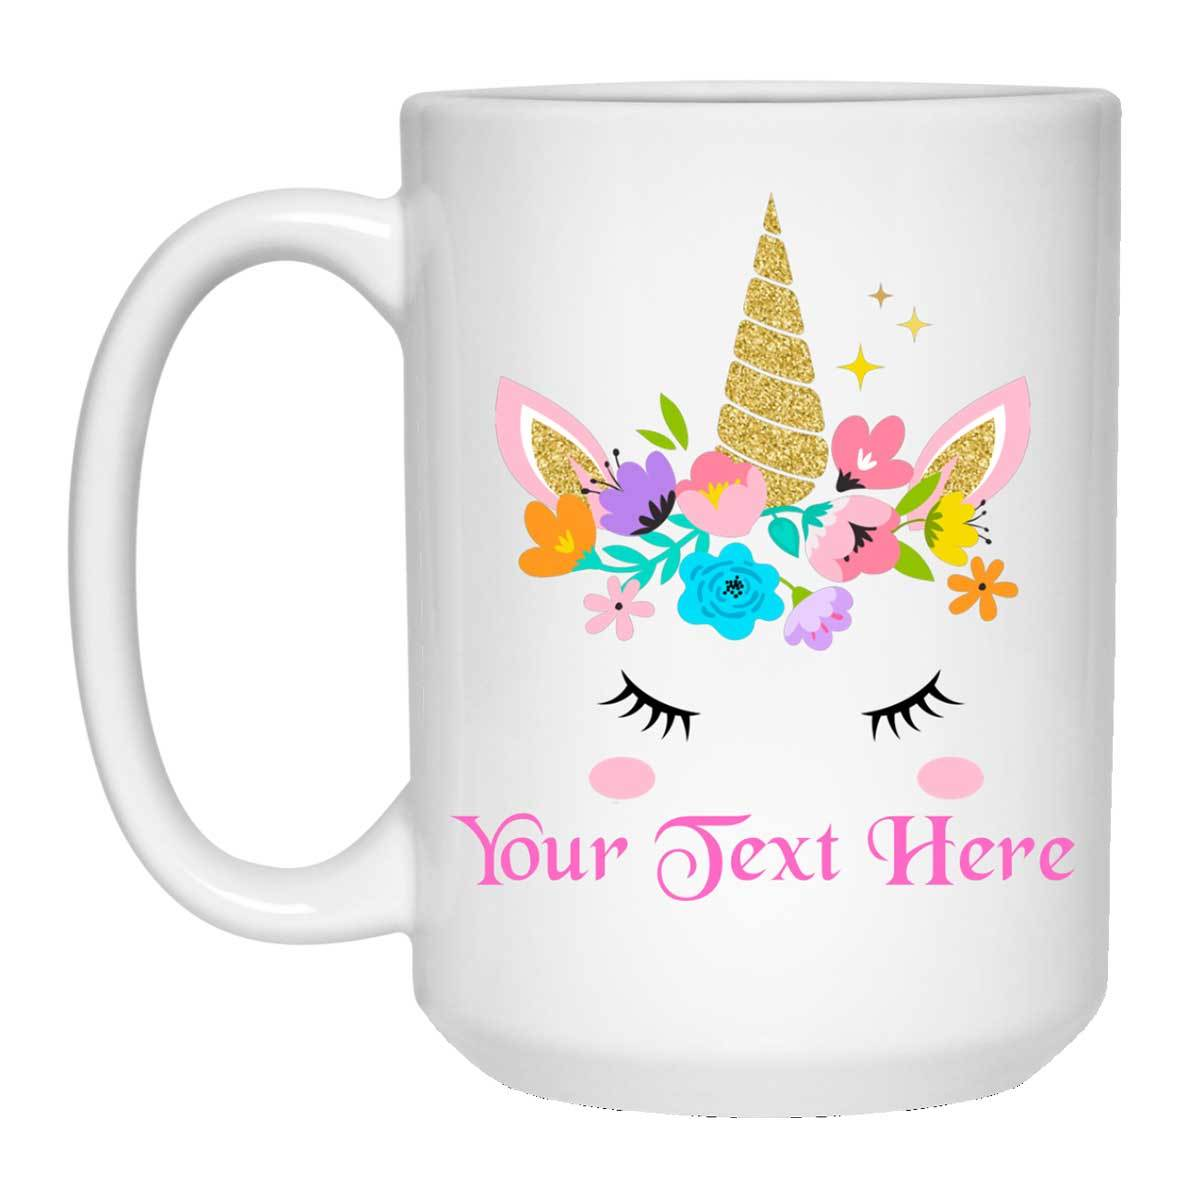 Unicorn Personalized 15 oz. White Mug Drinkware